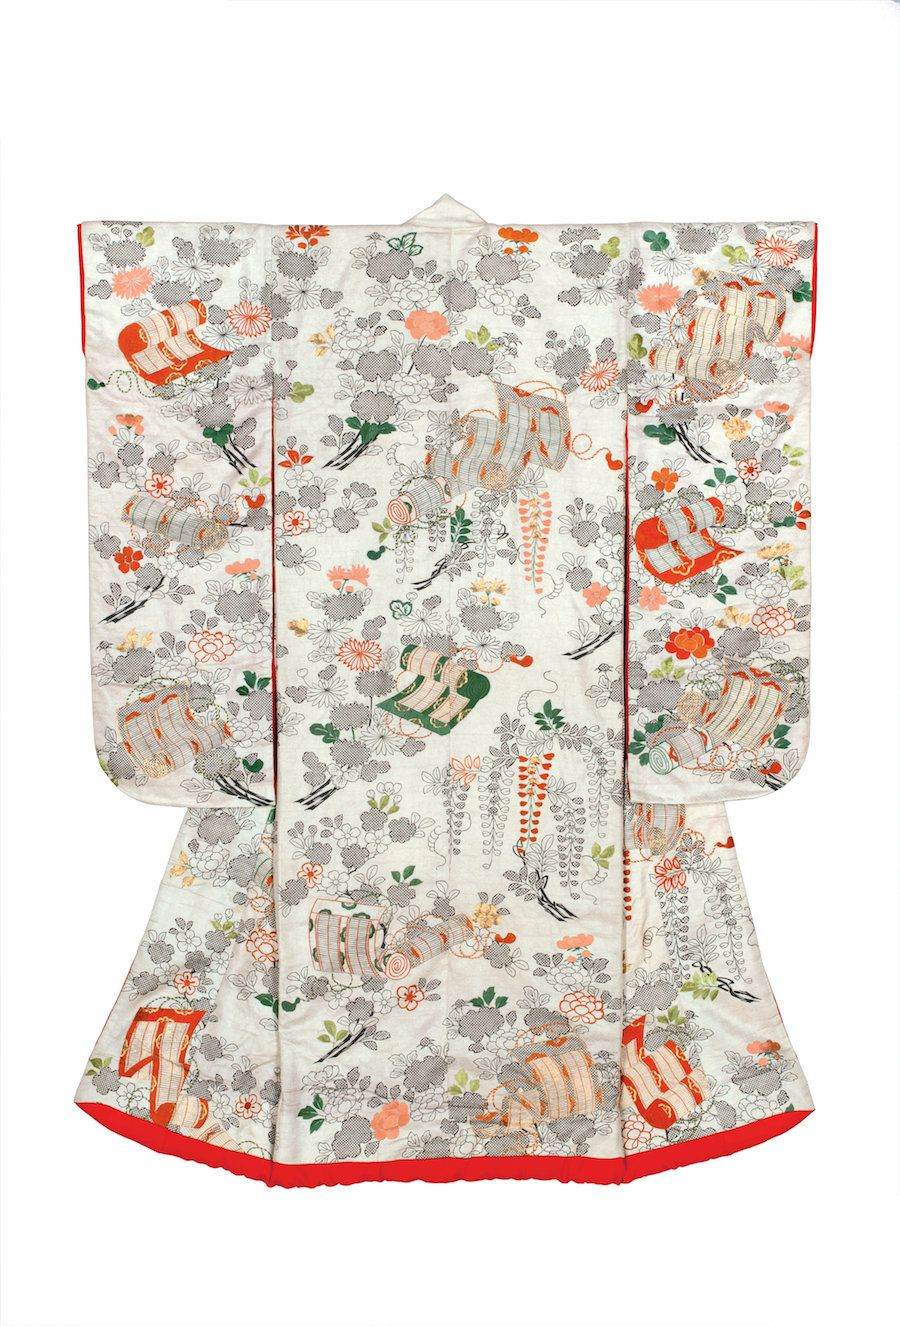 Japanese kimono: history of origin, features and traditions 26